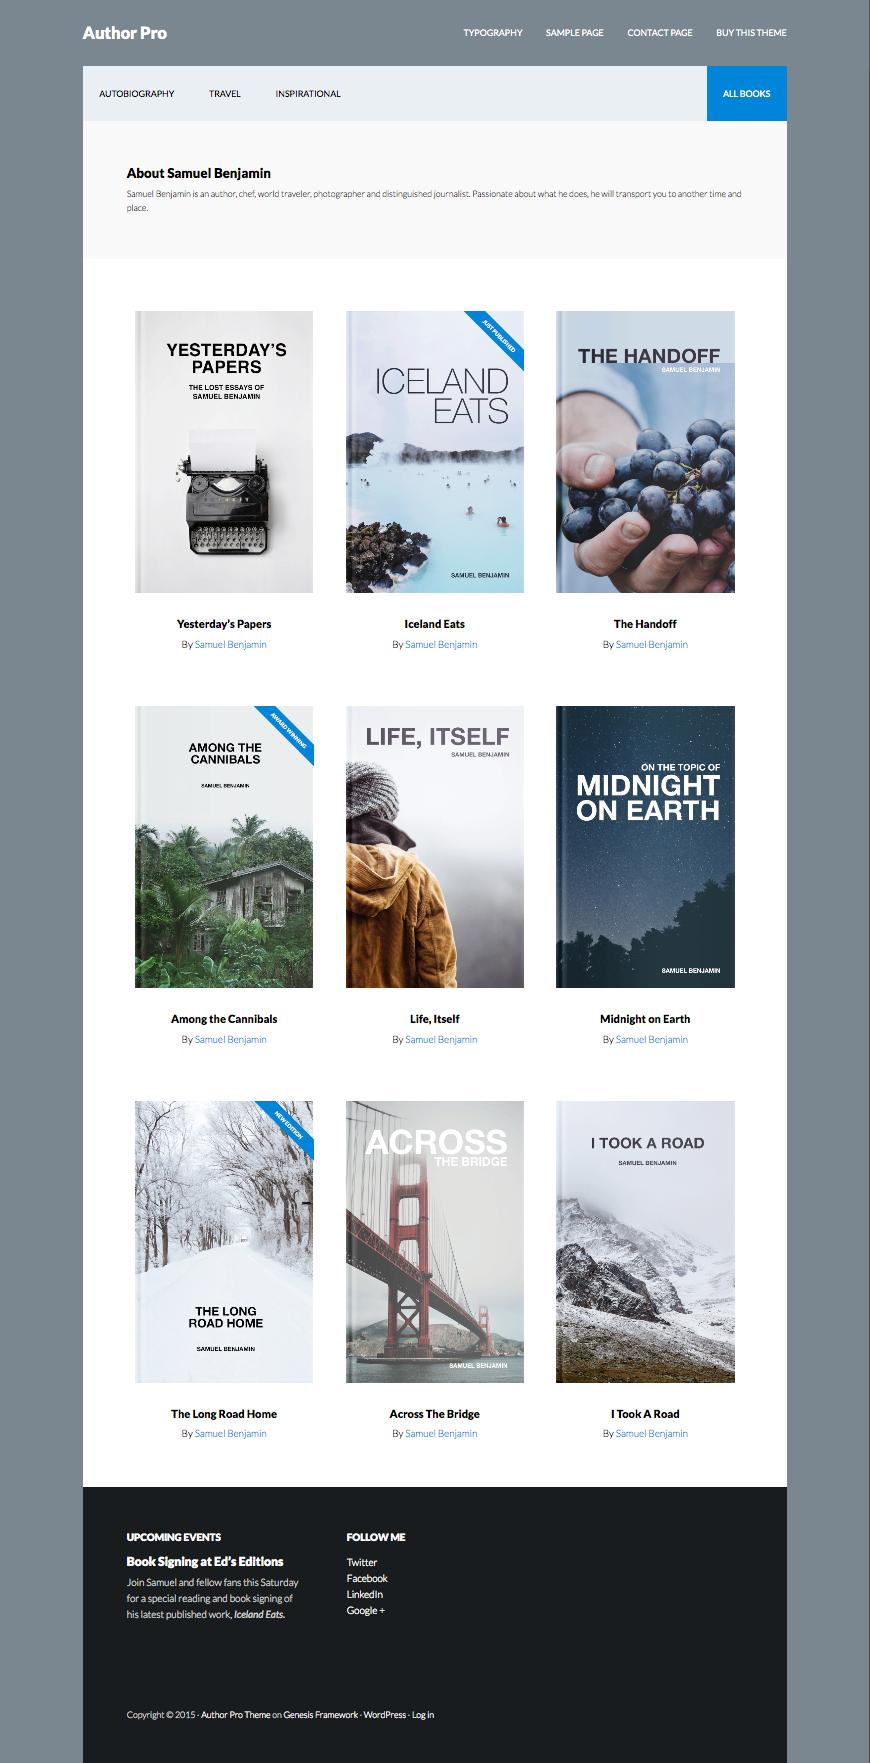 Author Pro WordPress Travel History Theme